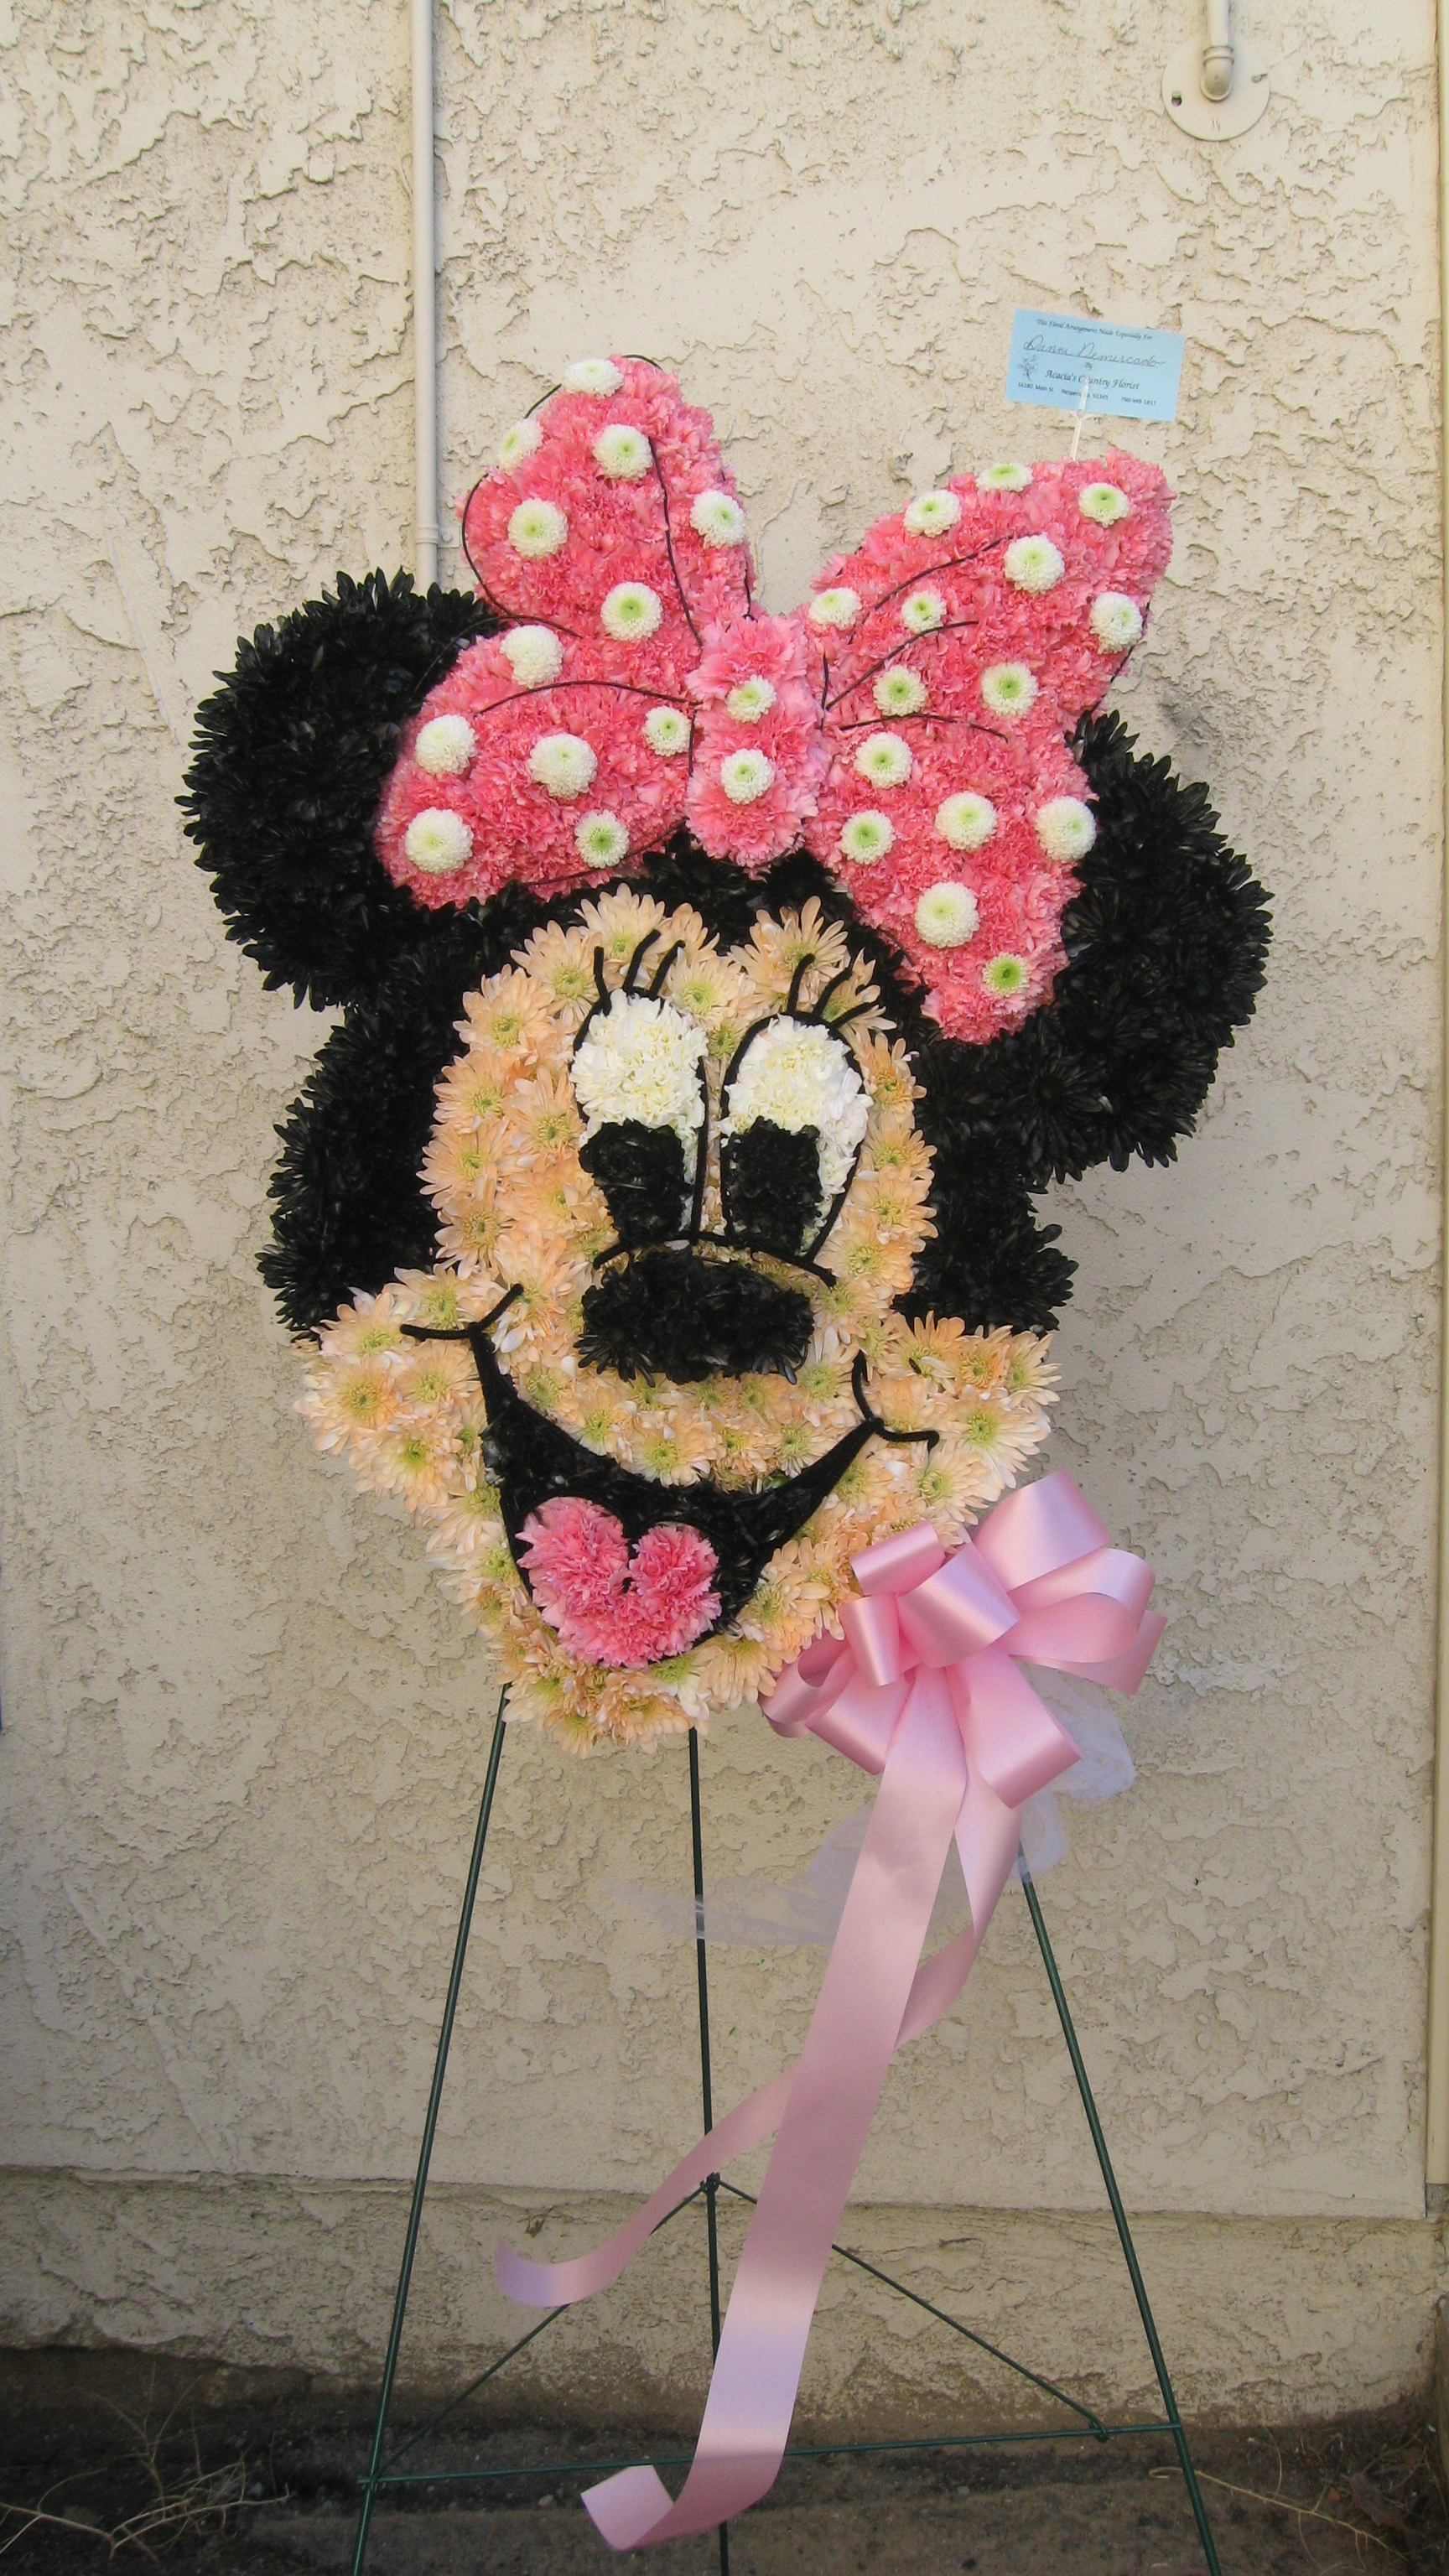 Personalized creative funeral flowers attached image minnie mouse for danni 12 28 2010 4g izmirmasajfo